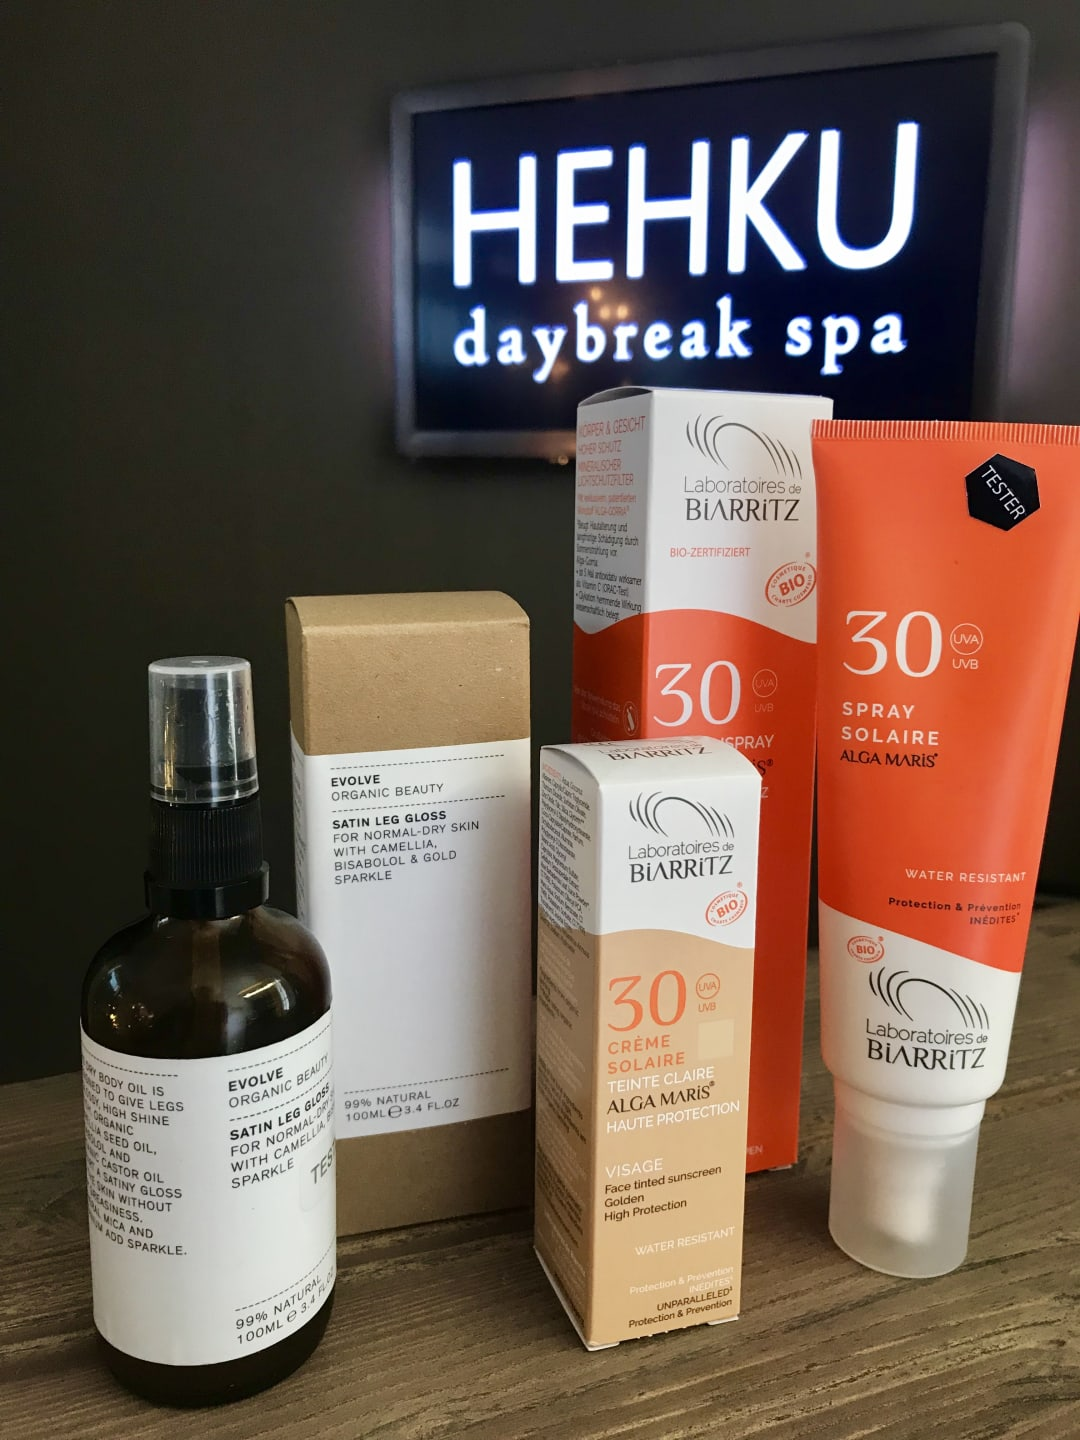 HEHKU daybreak spa